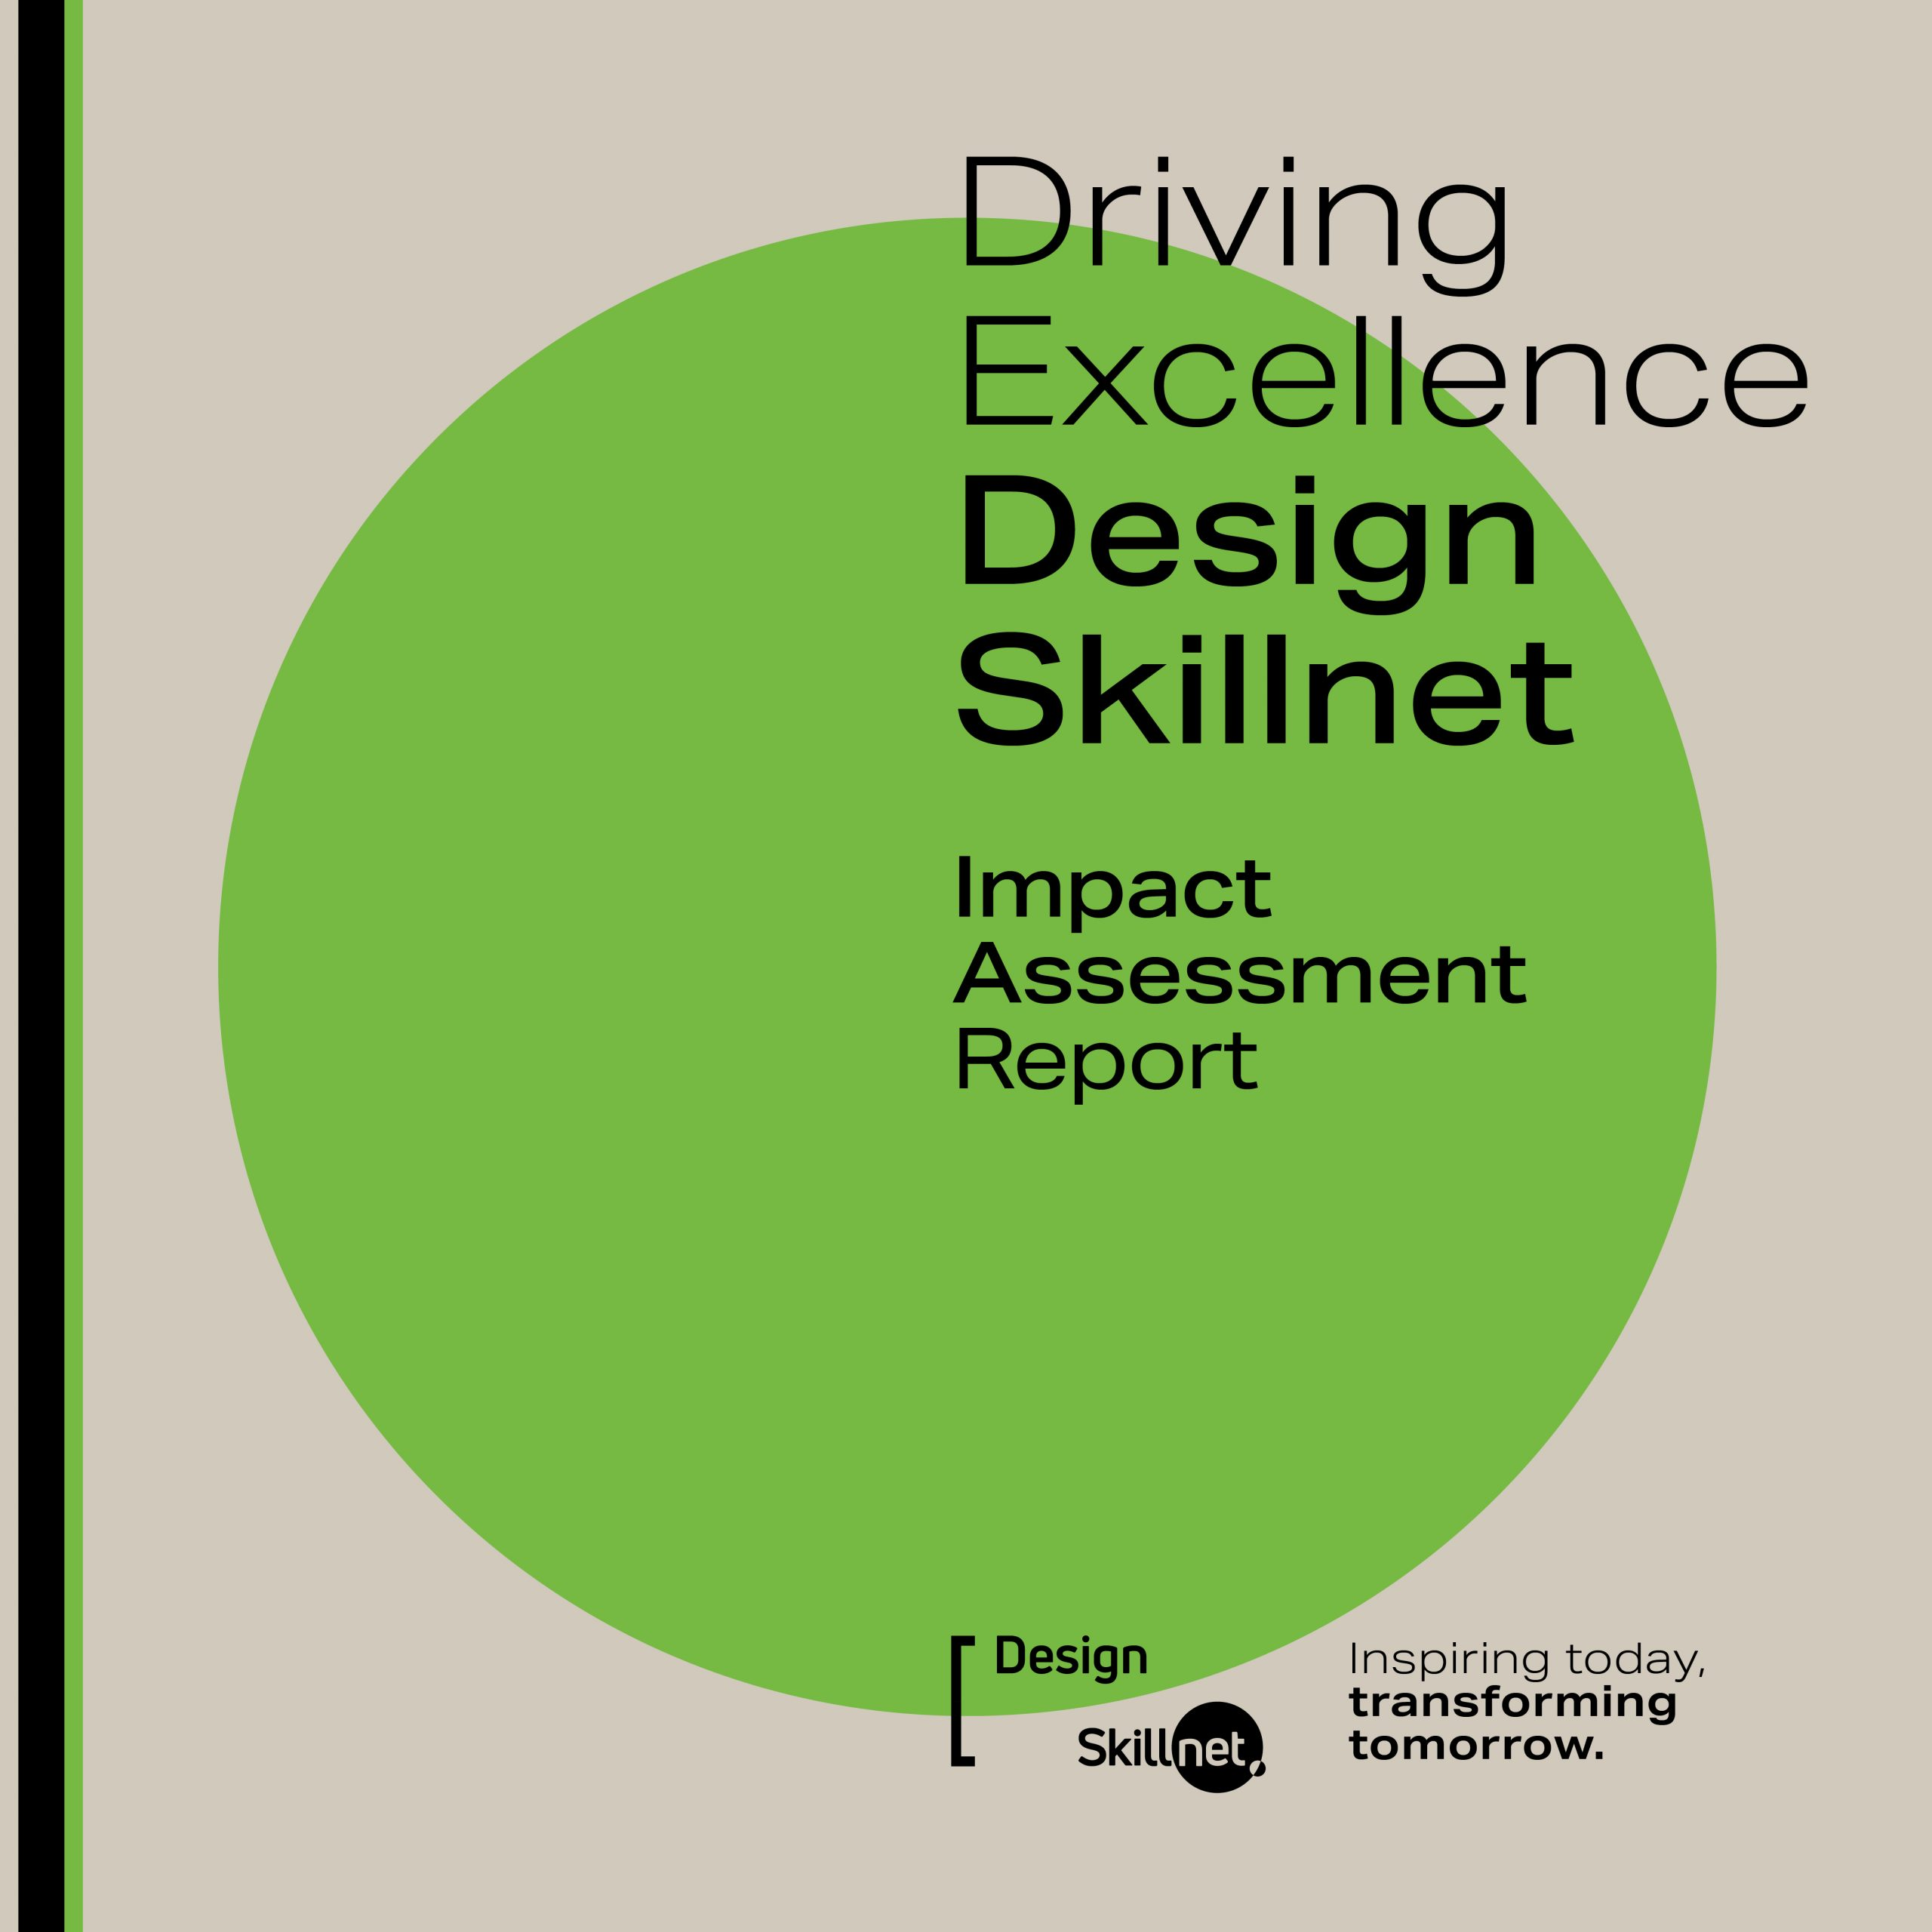 Impact Assessment Report